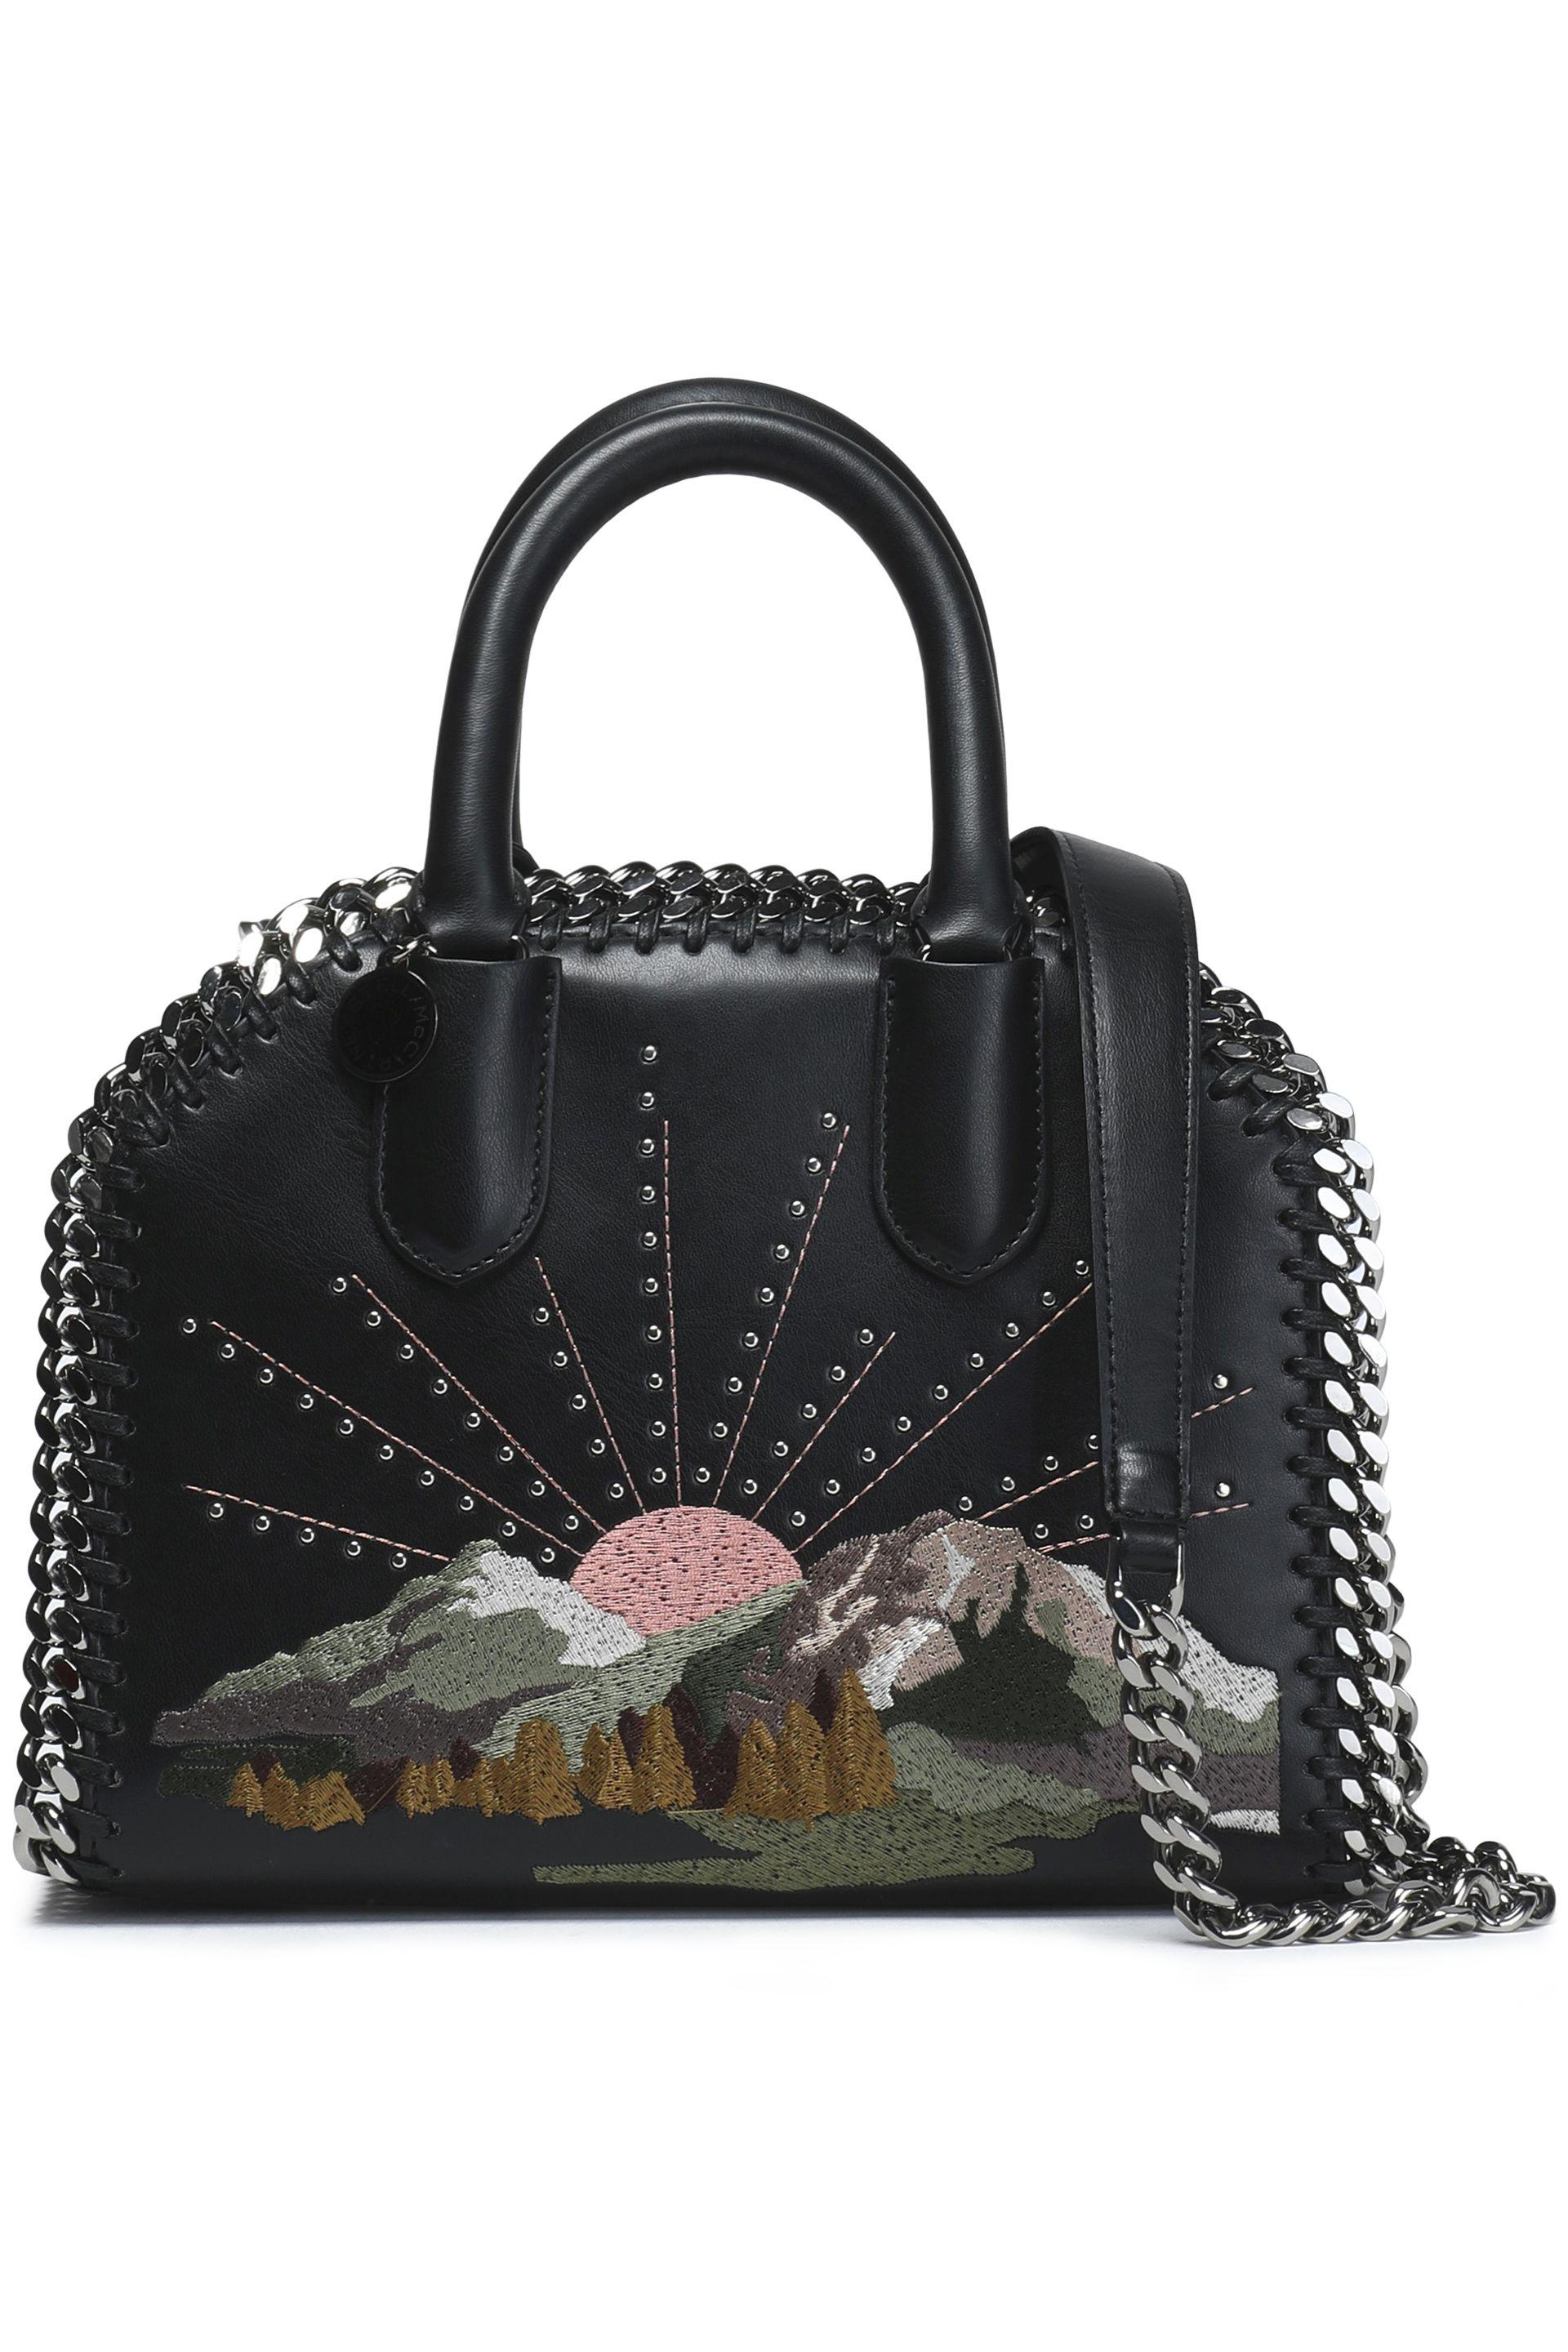 Stella McCartney Studded Embroidered Faux Leather Shoulder Bag in ... ac13c3994704c